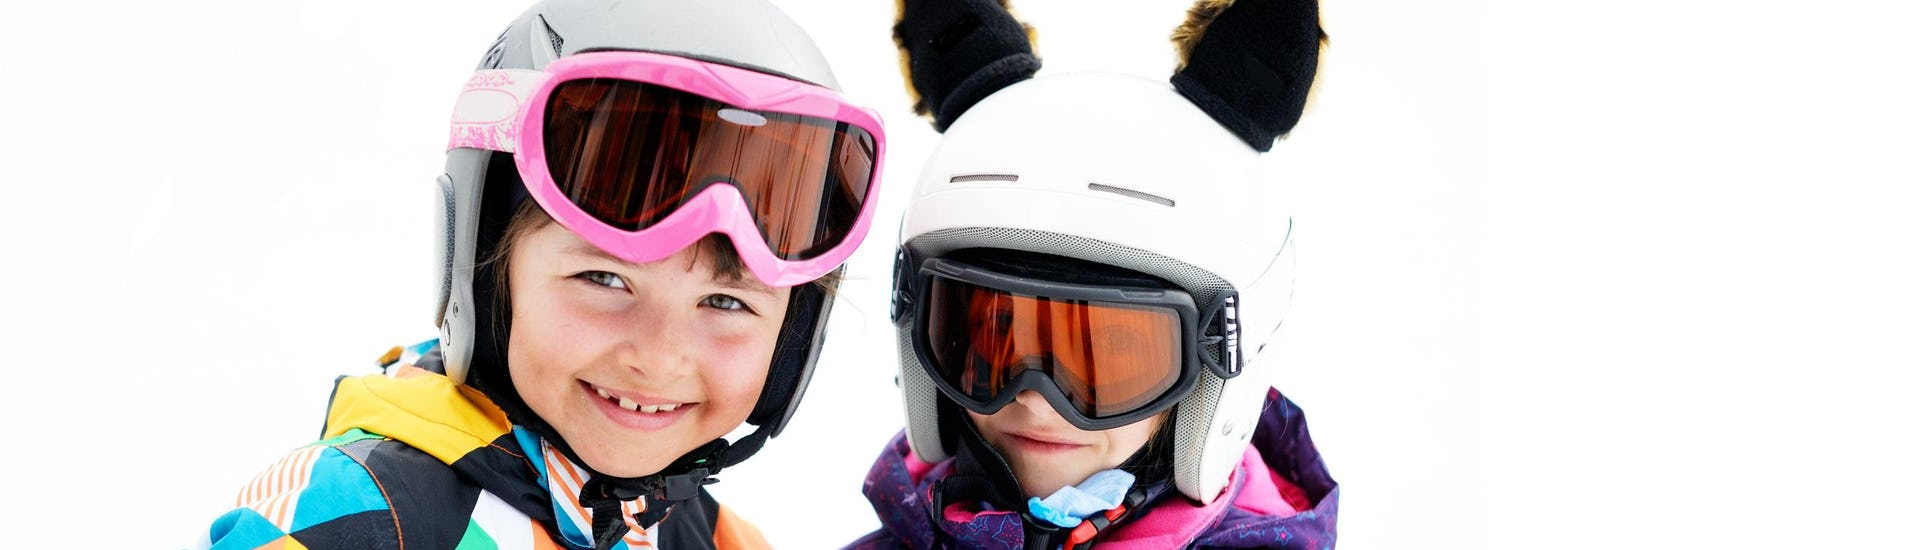 Two young children smiling at the camera during one of the Ski Lessons for Kids (5-12 years) - All Levels - Veysonnaz organised by Neige Aventure.